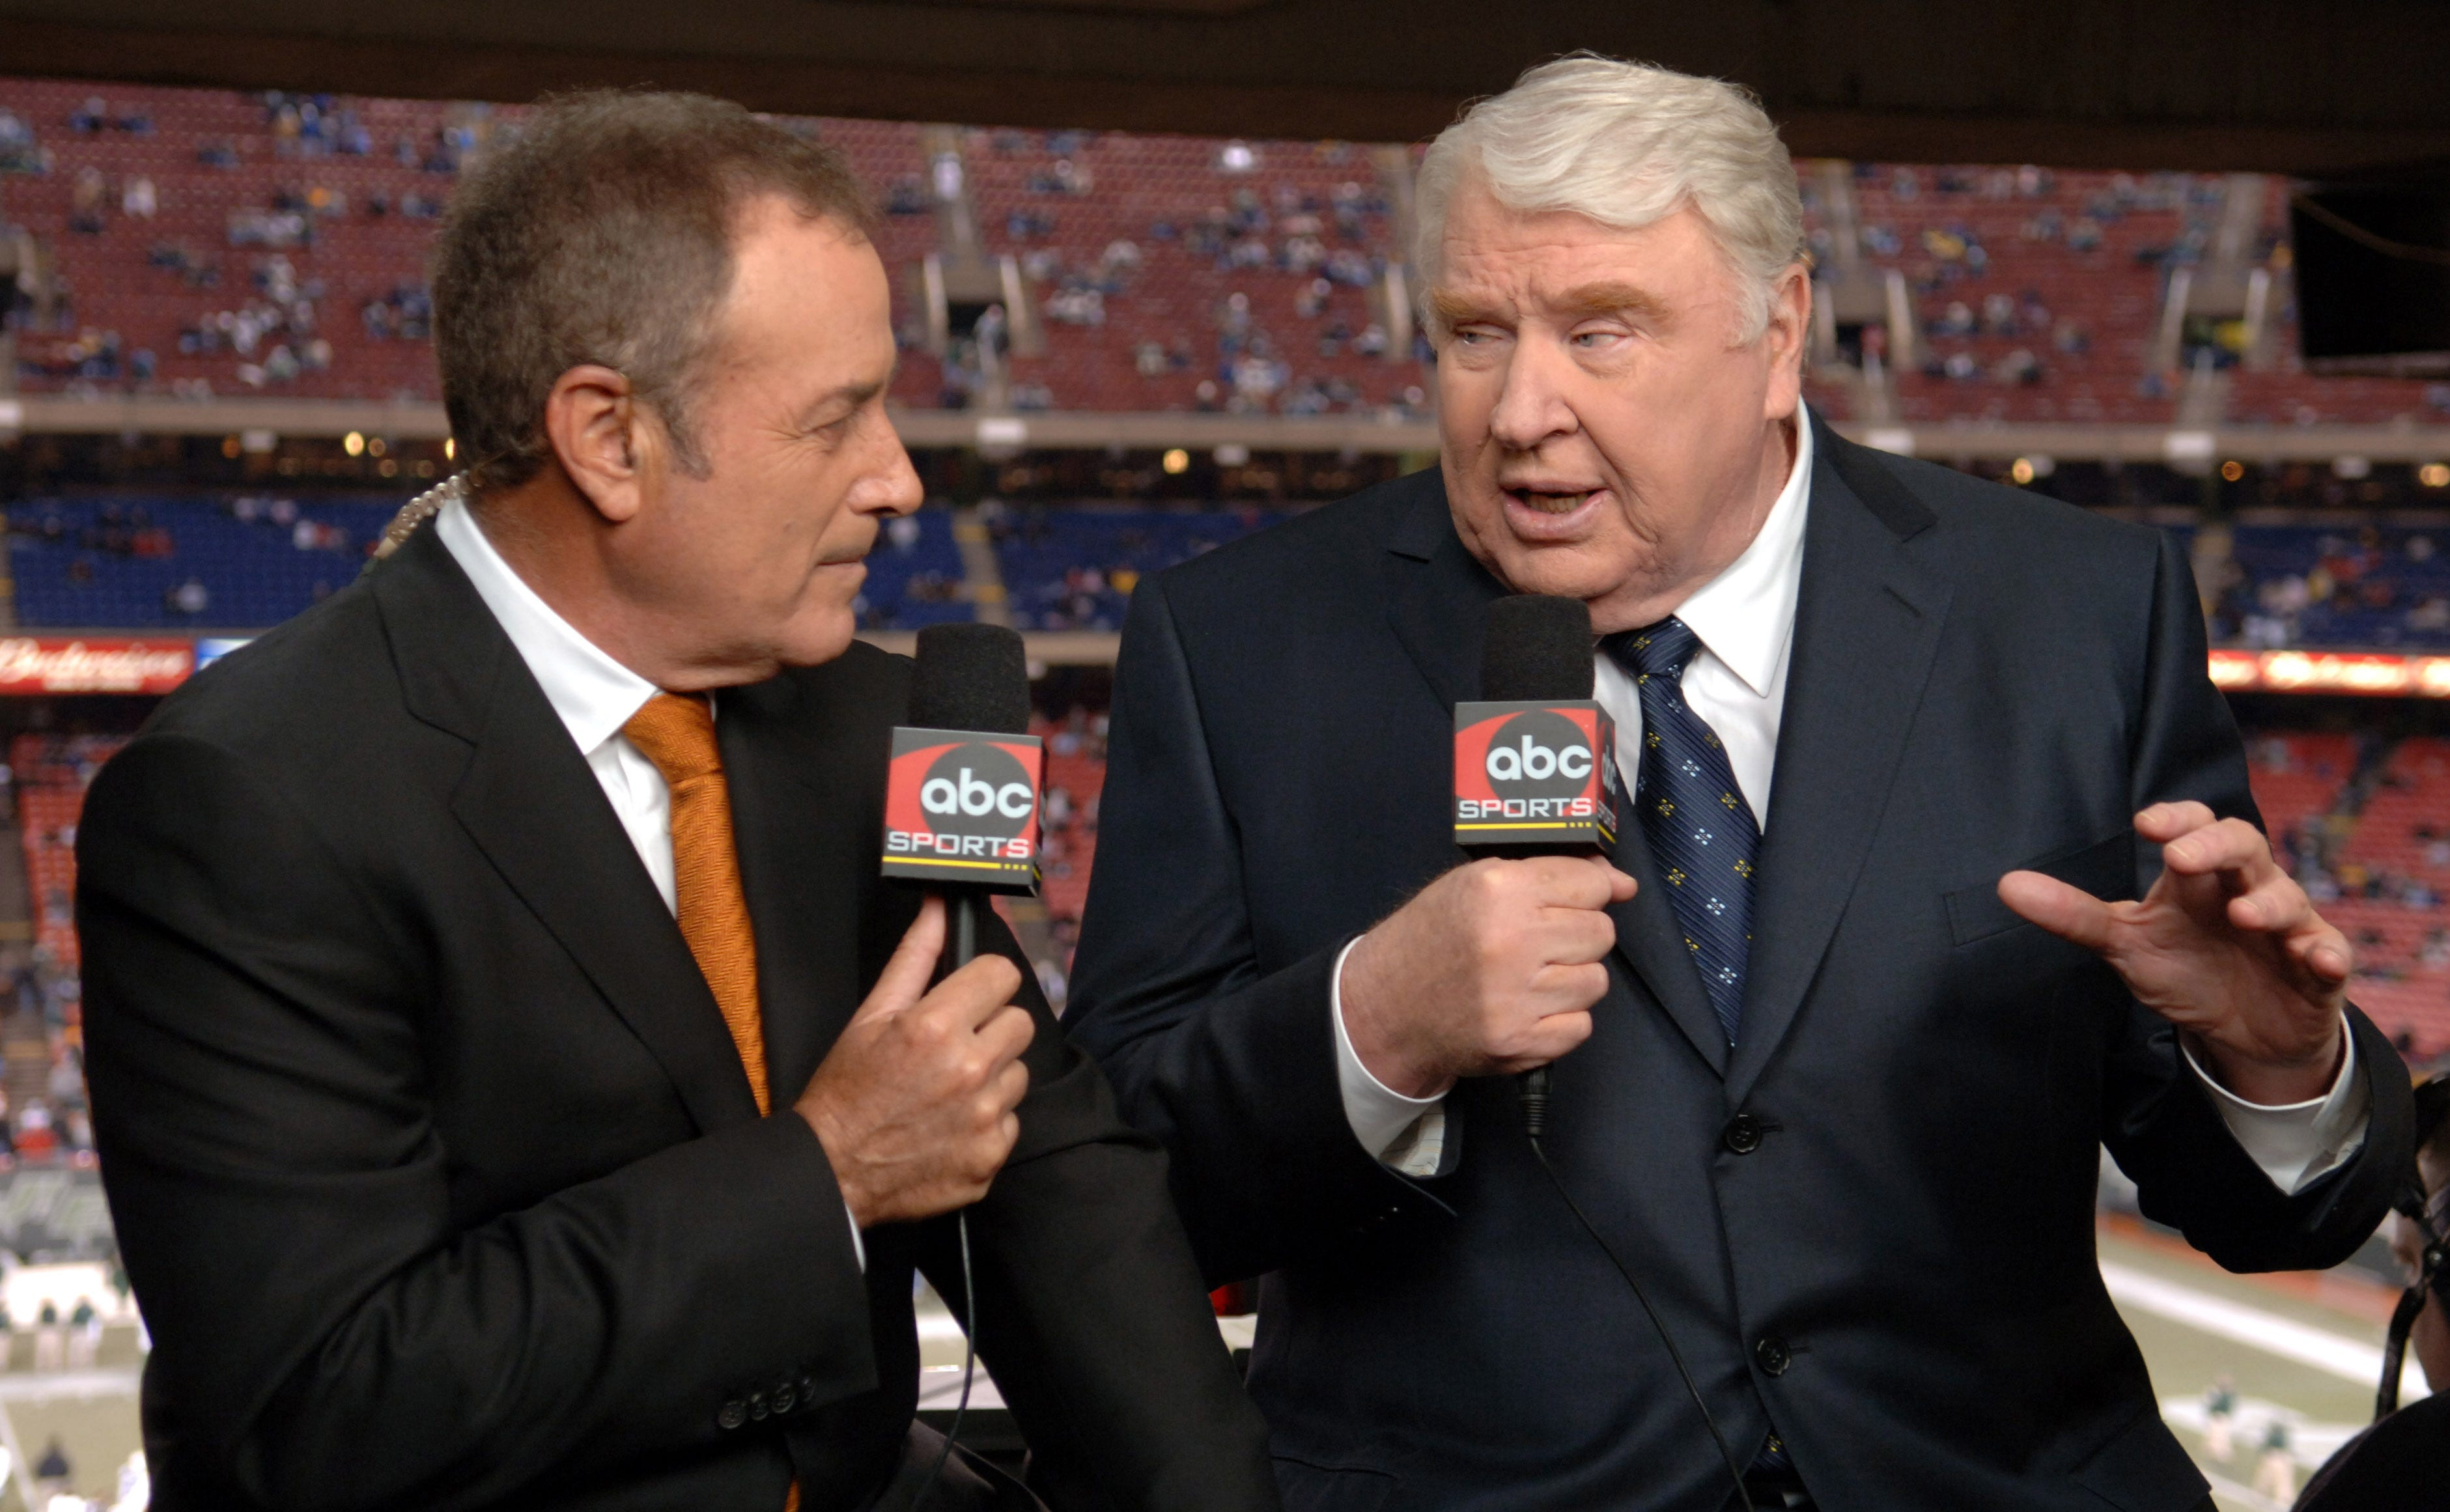 Nfl 100 All Time Greatest Television Radio Voices Of The League